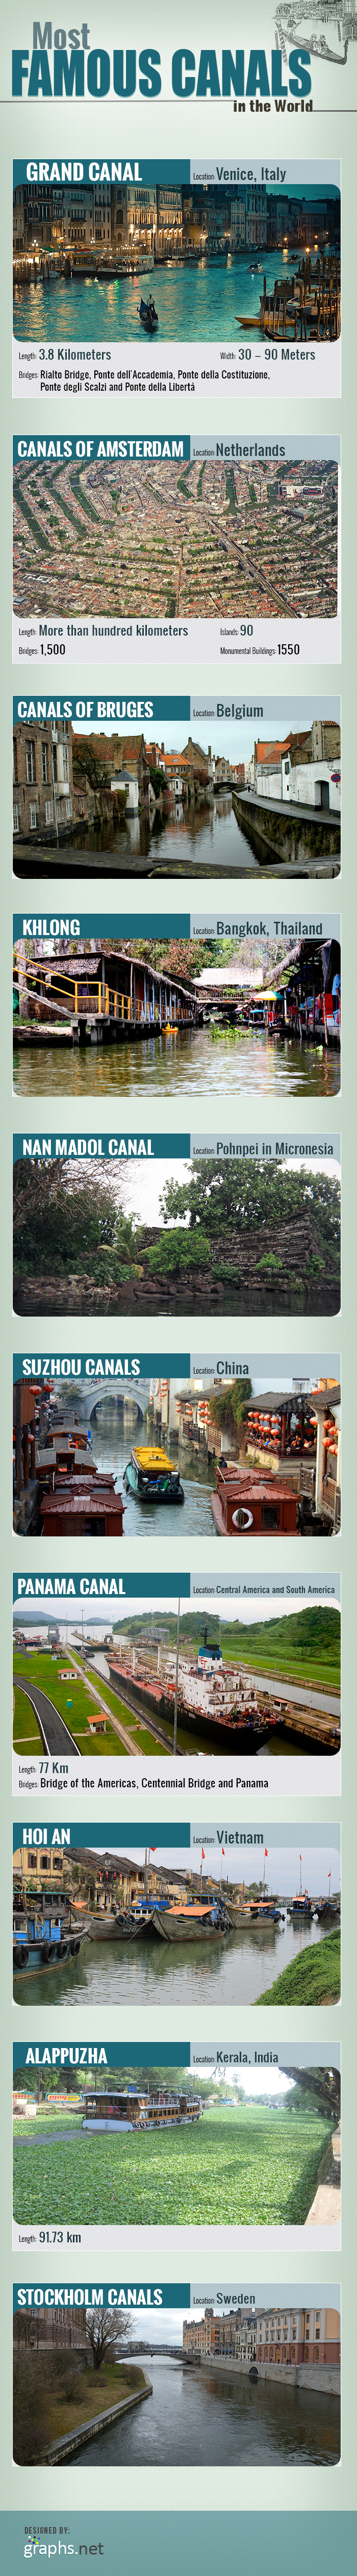 Most Famous Canals in the World